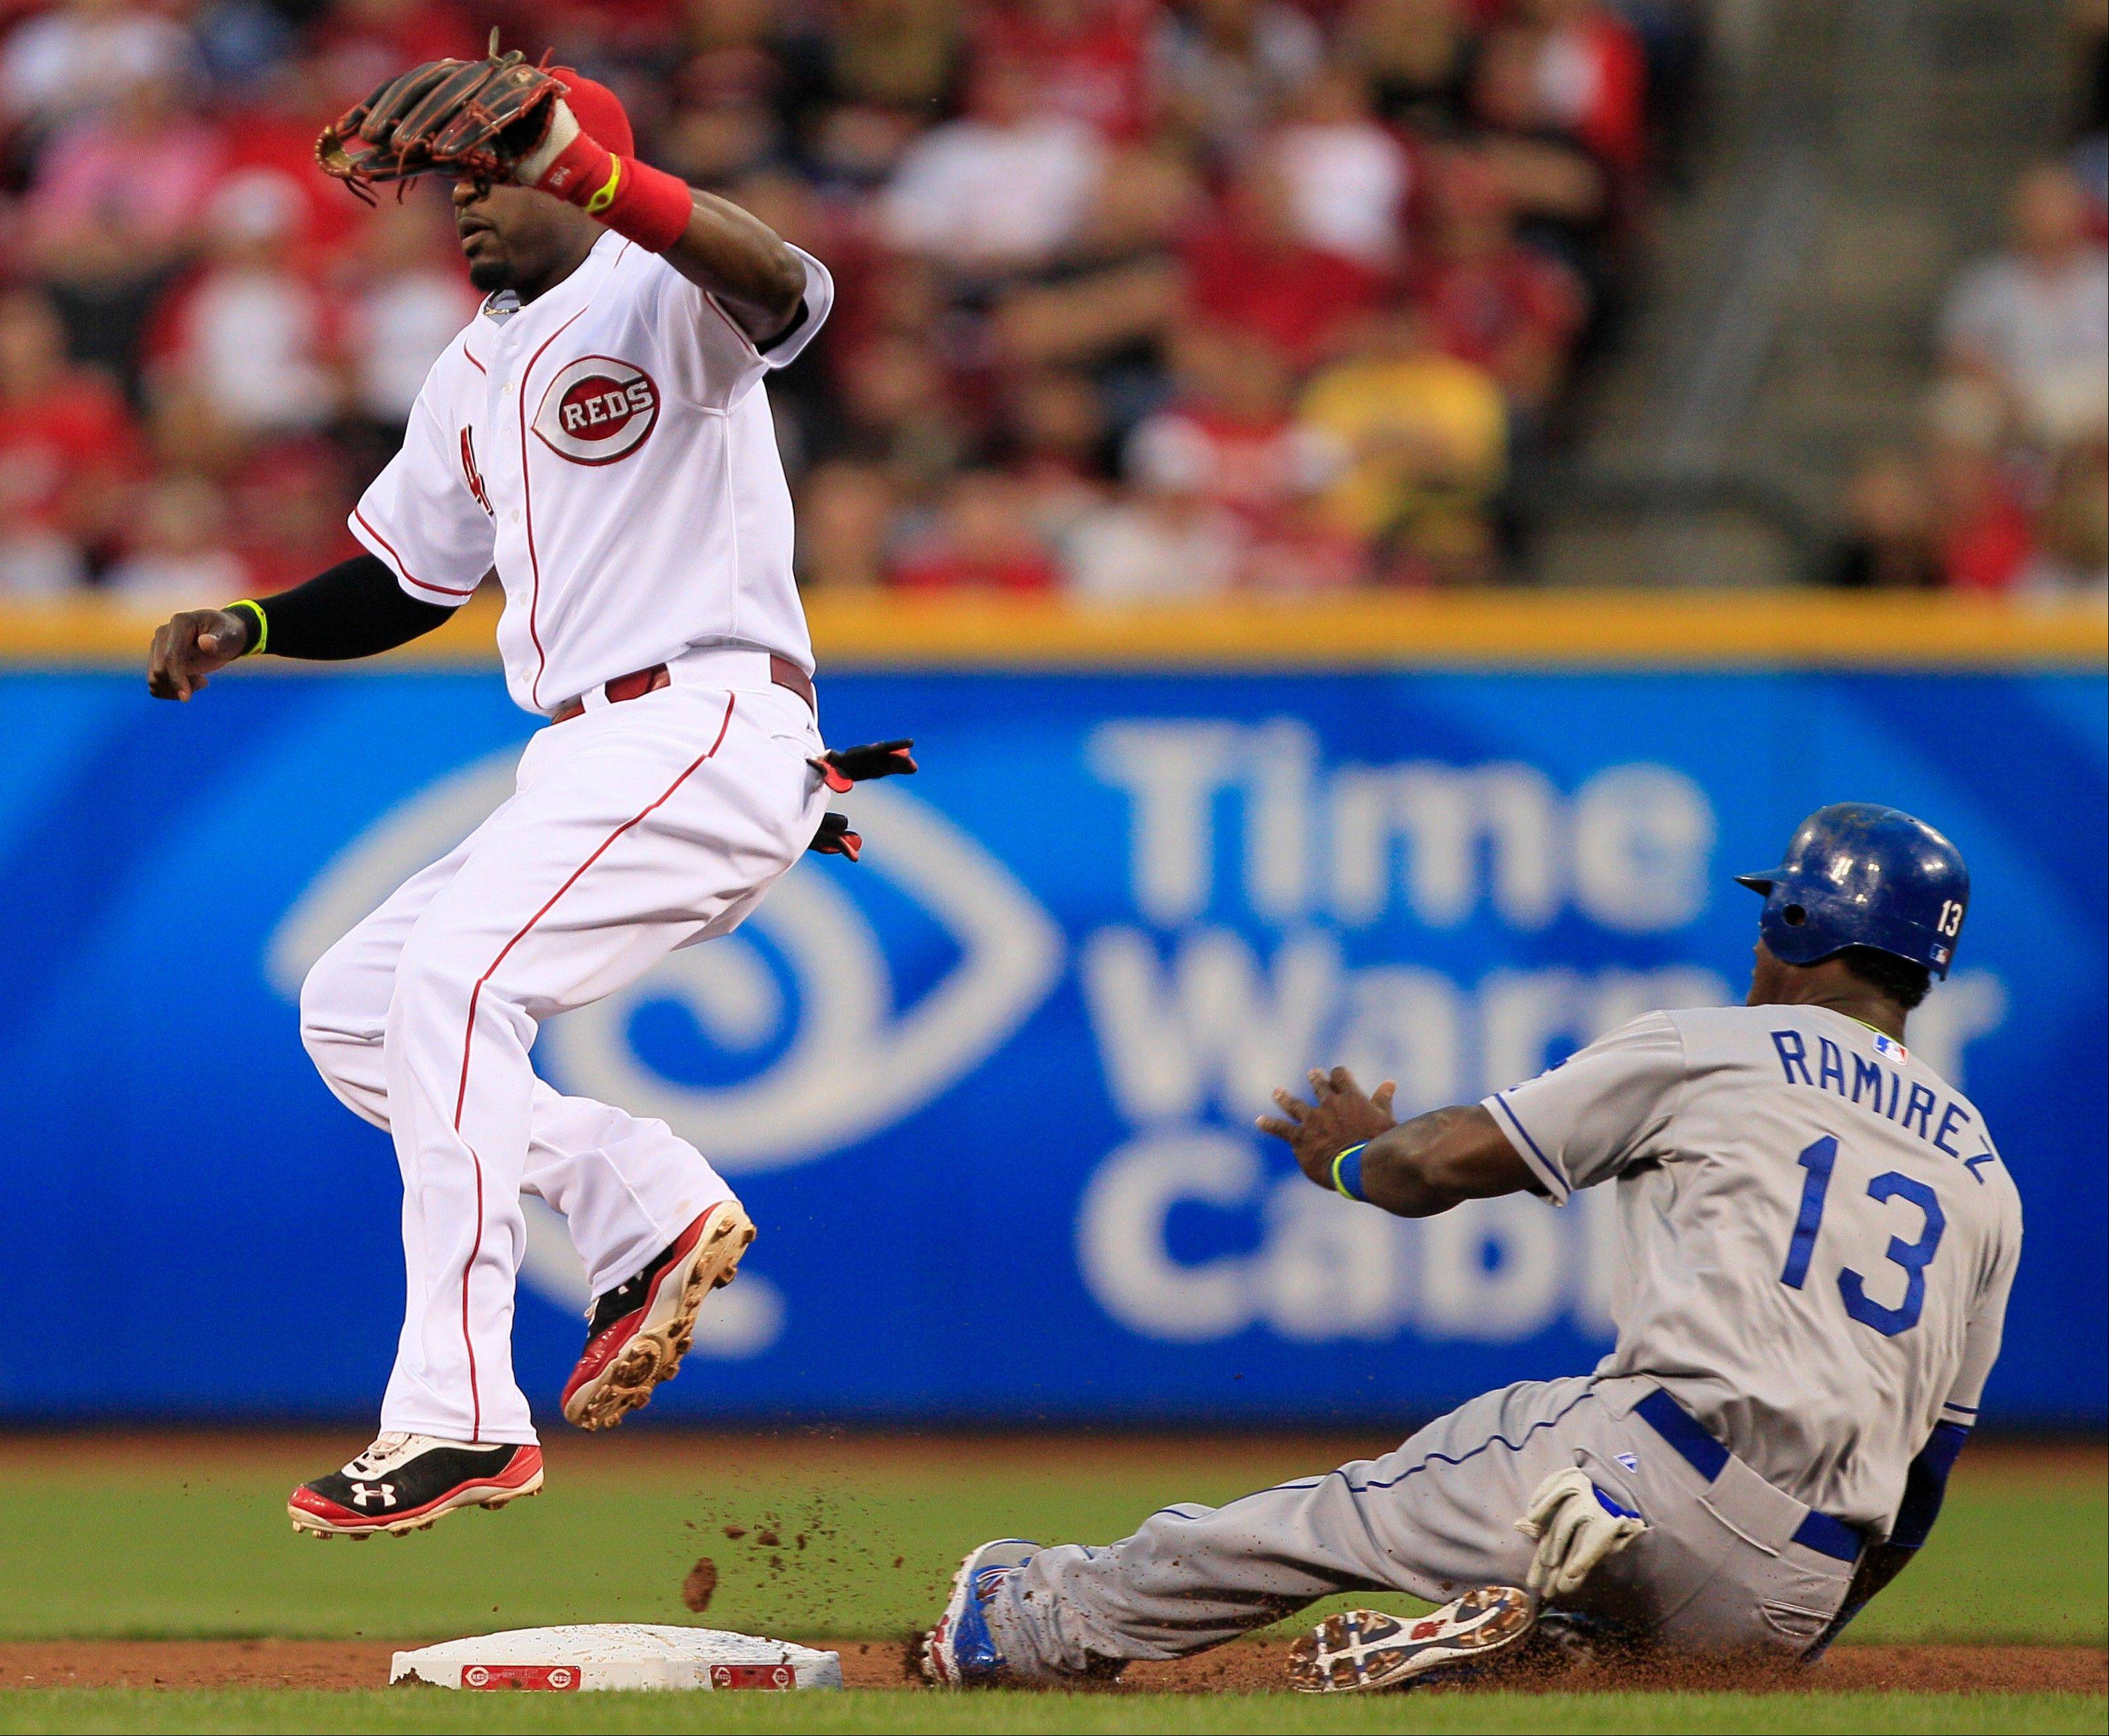 The Dodgers' Hanley Ramirez steals second base as Reds second baseman Brandon Phillips catches the late throw in the second inning Friday in Cincinnati.